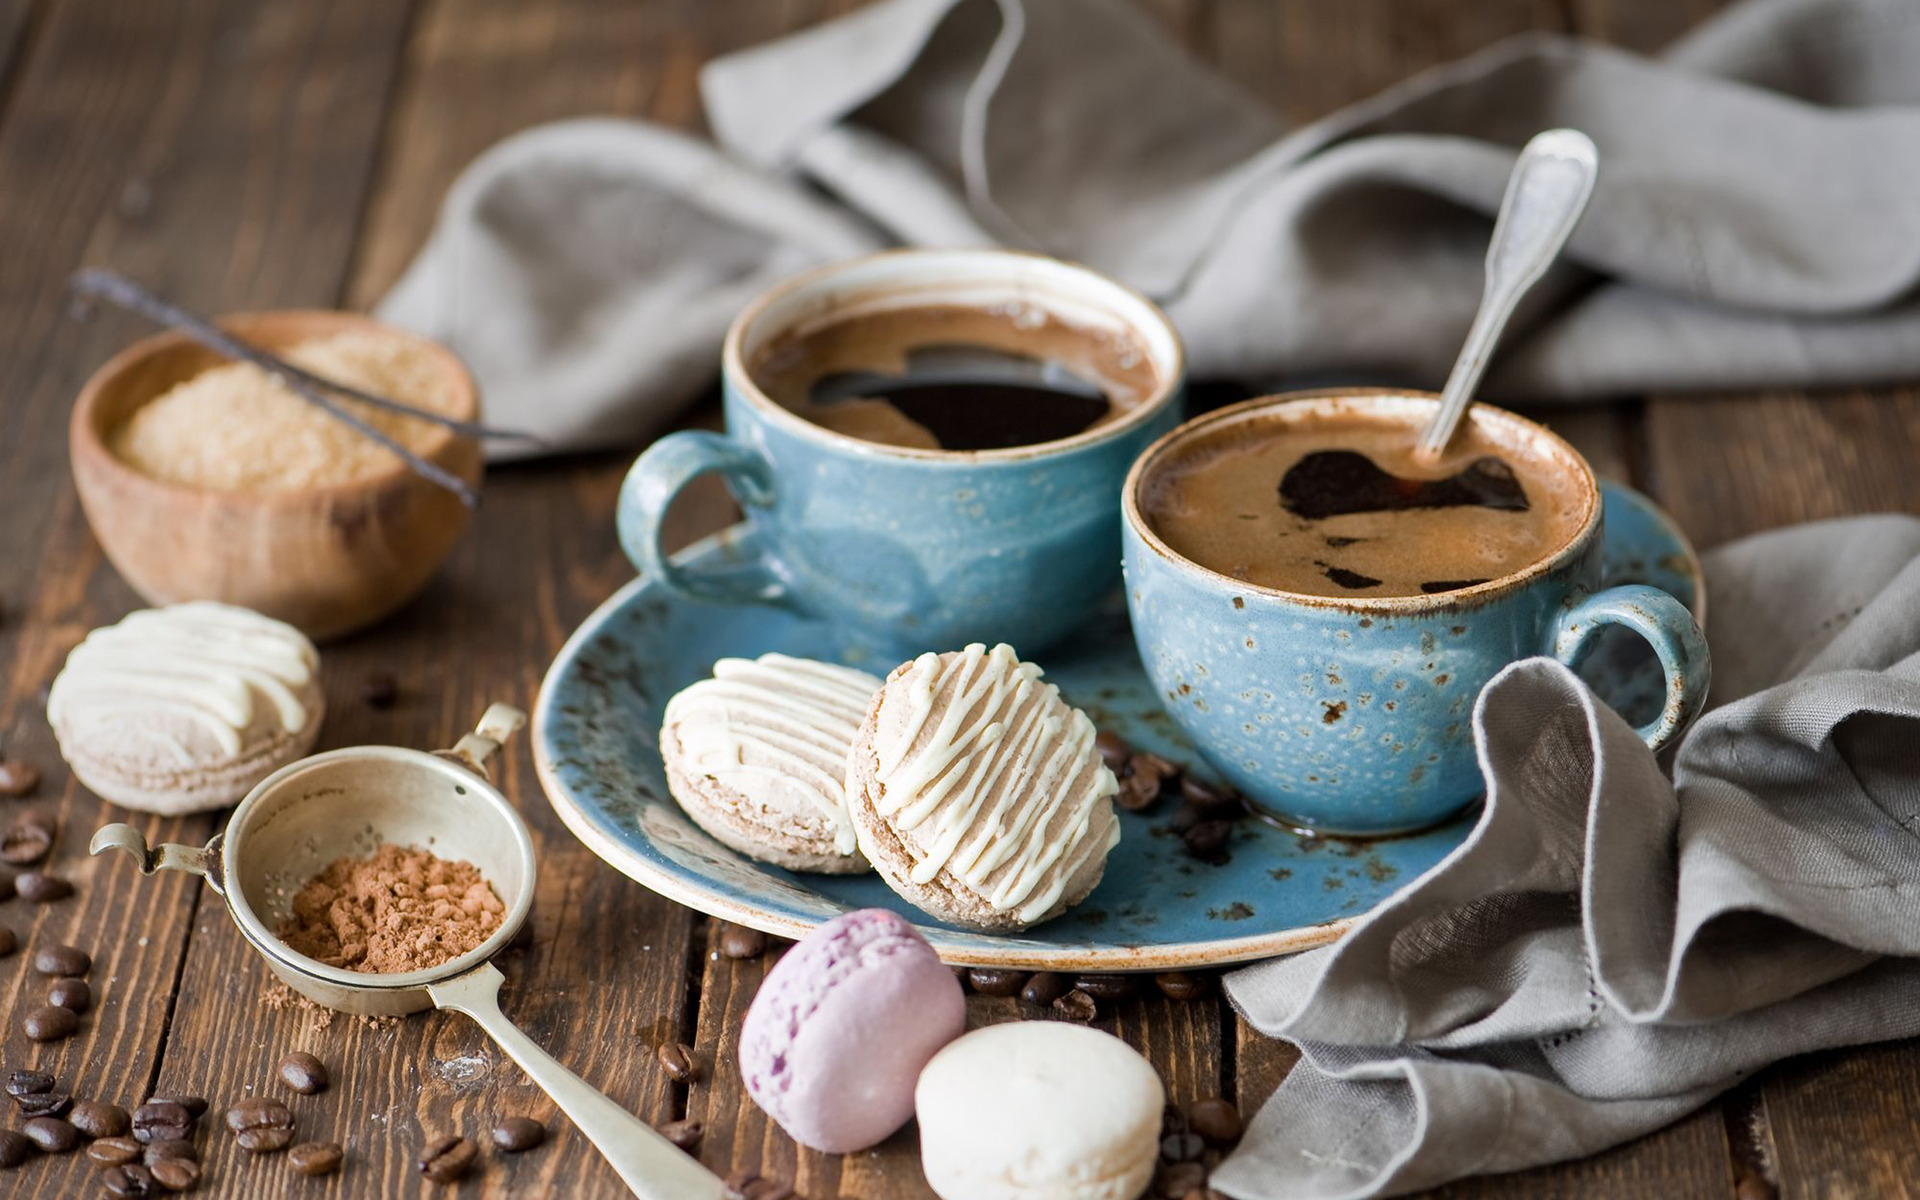 coffee-and-sweets-photography-hd-wallpaper-1920x1200-8666.jpg